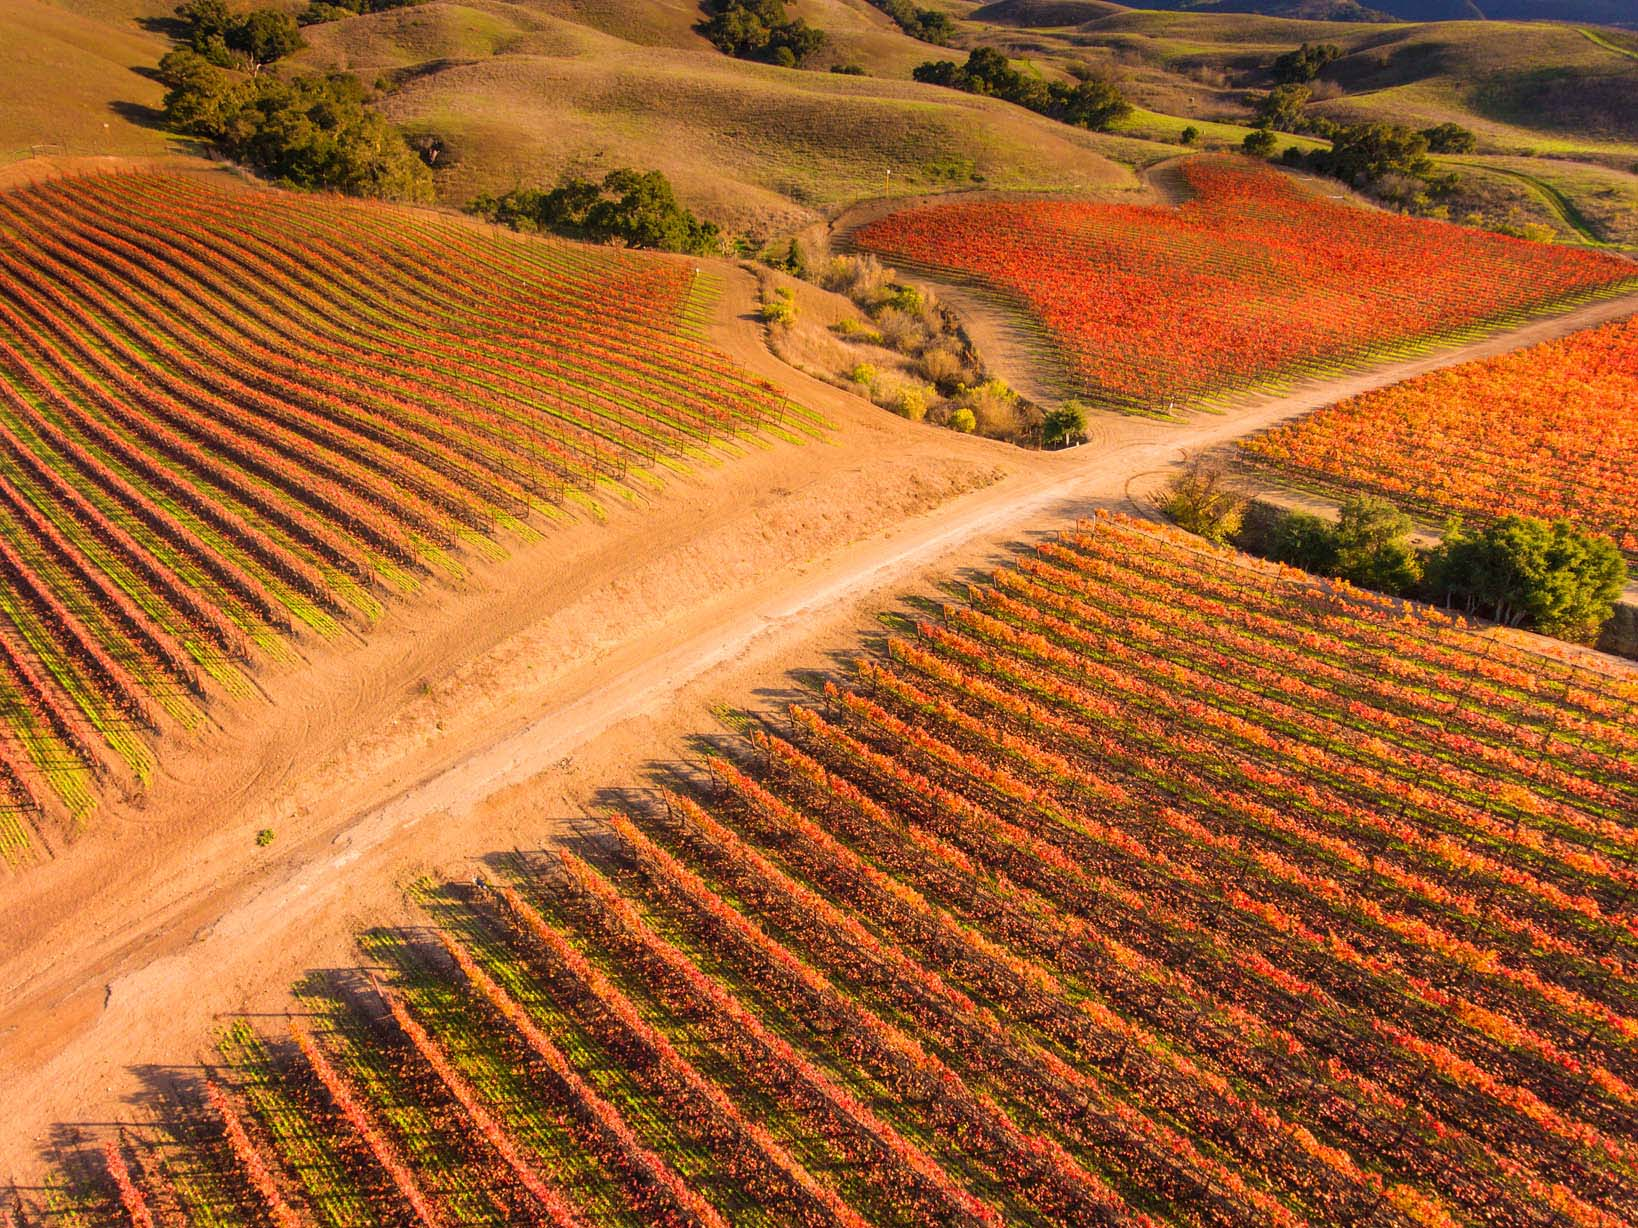 Aerial_Fall_Vineyard1